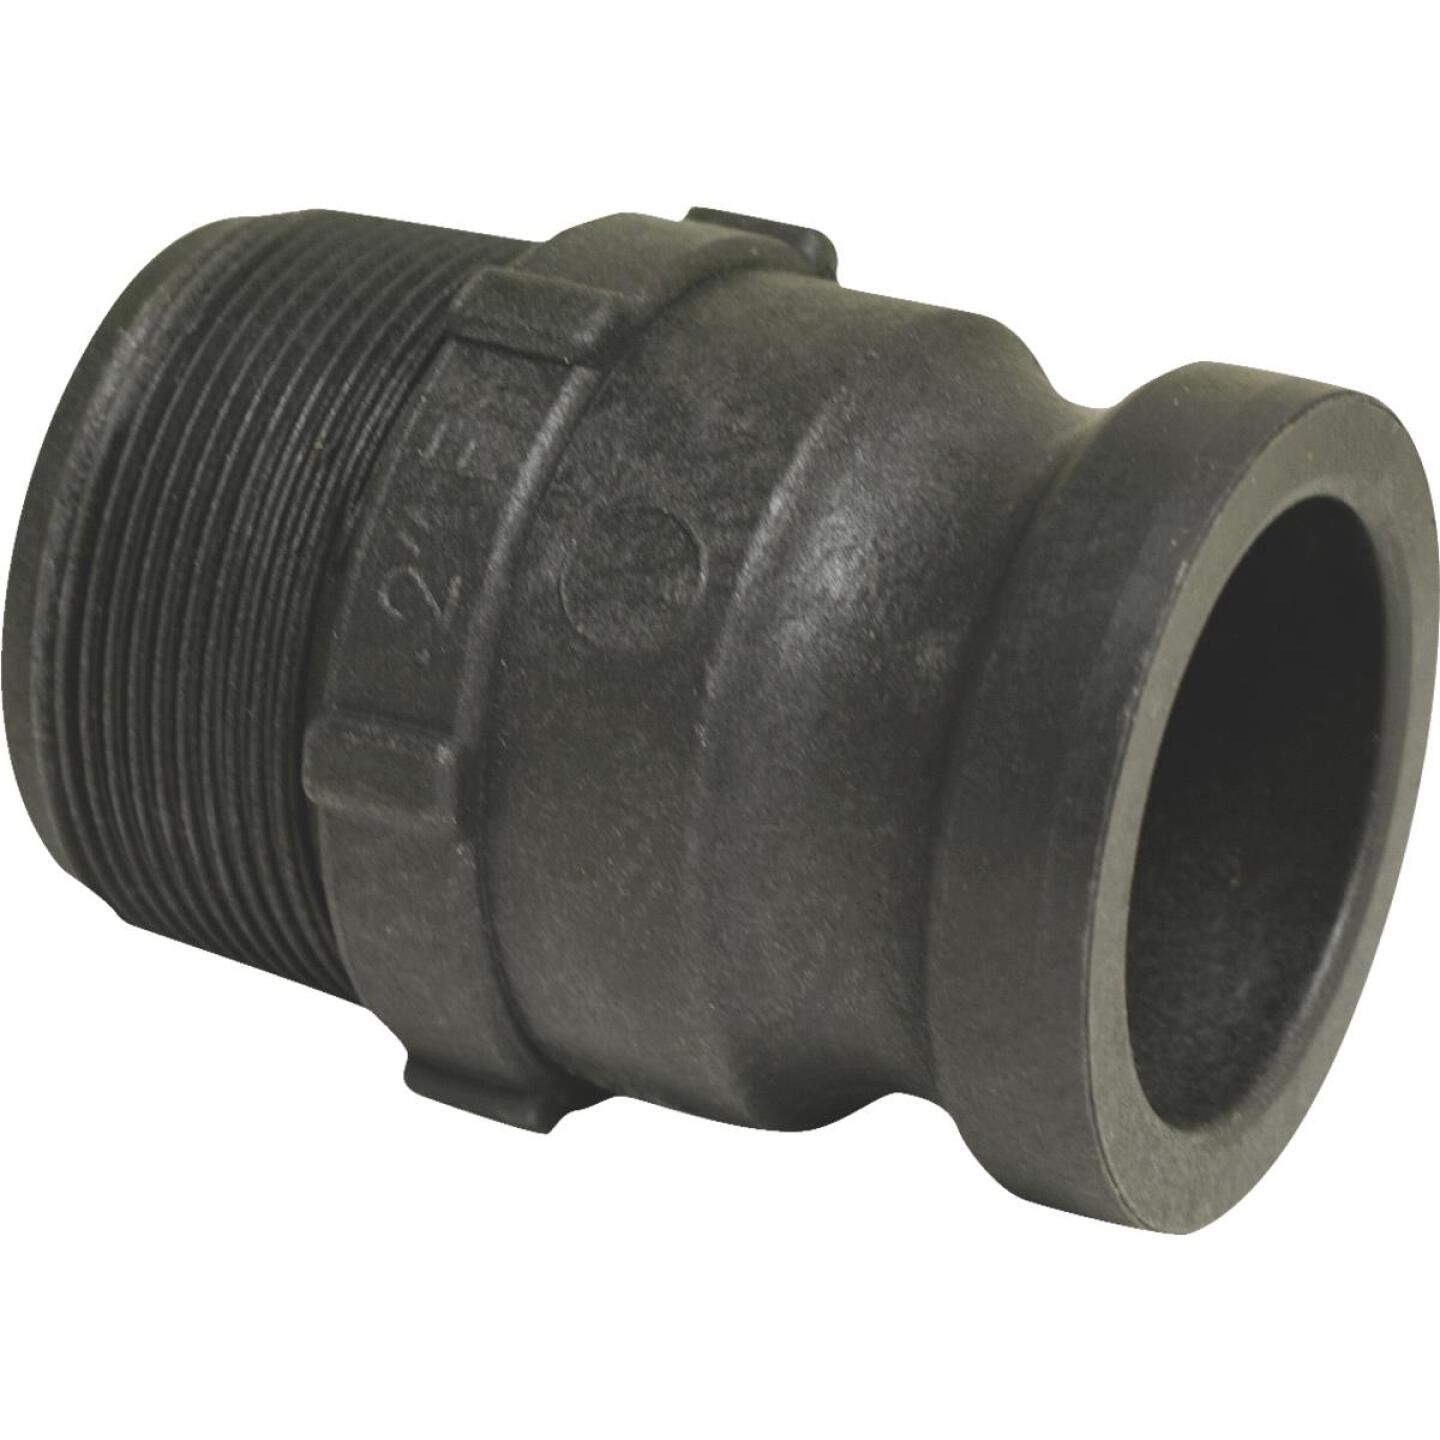 Apache 2 In. Part F Male Cam and Groove Polypropylene Adapter Image 2